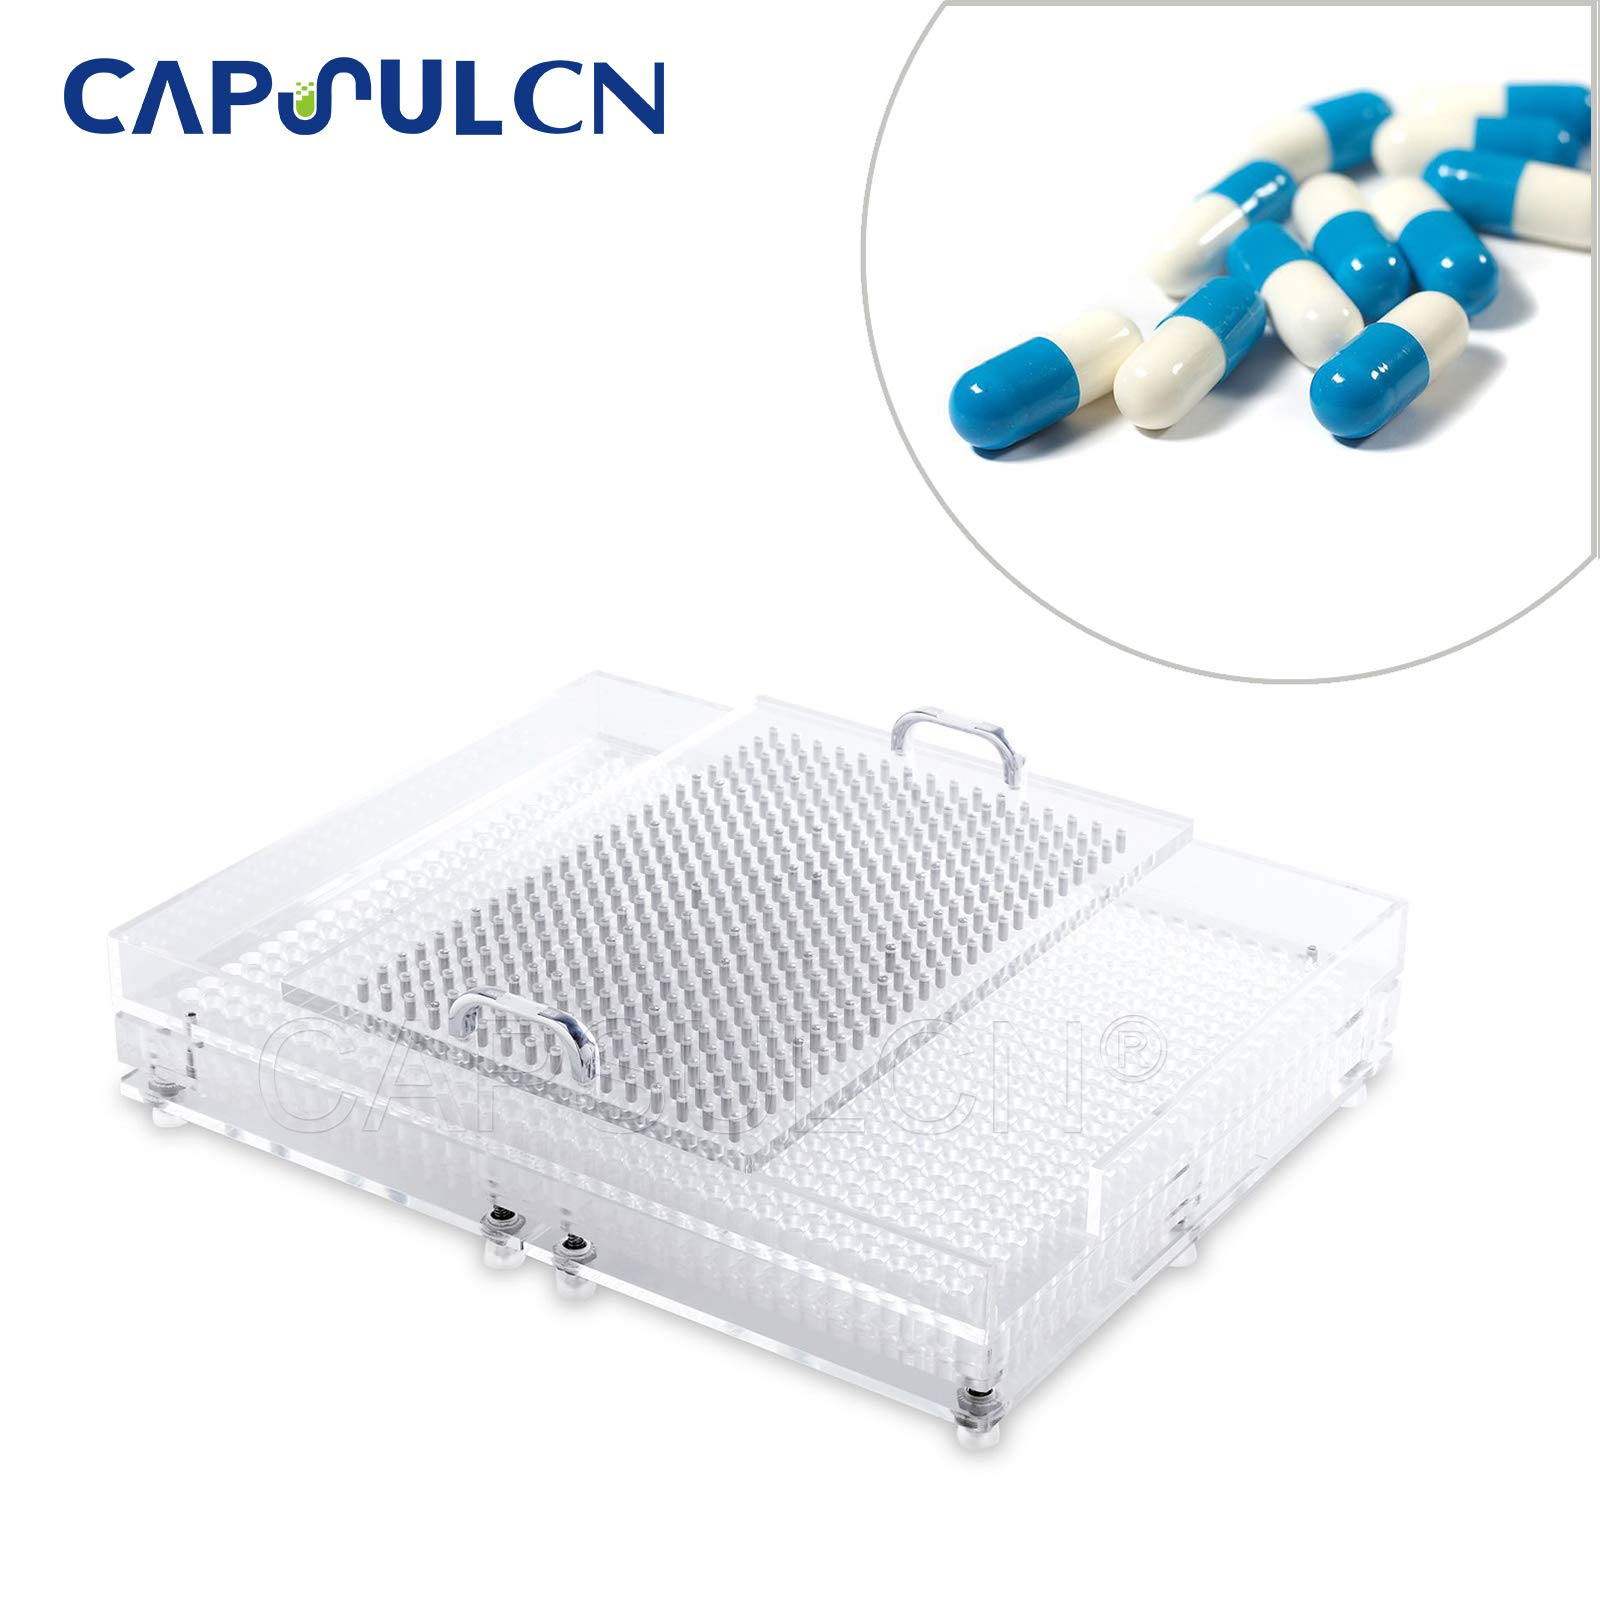 New Acrylic CN-800CL 800 Holes Manual Capsule Filling Machine Size 0 4000 pcs/Hour